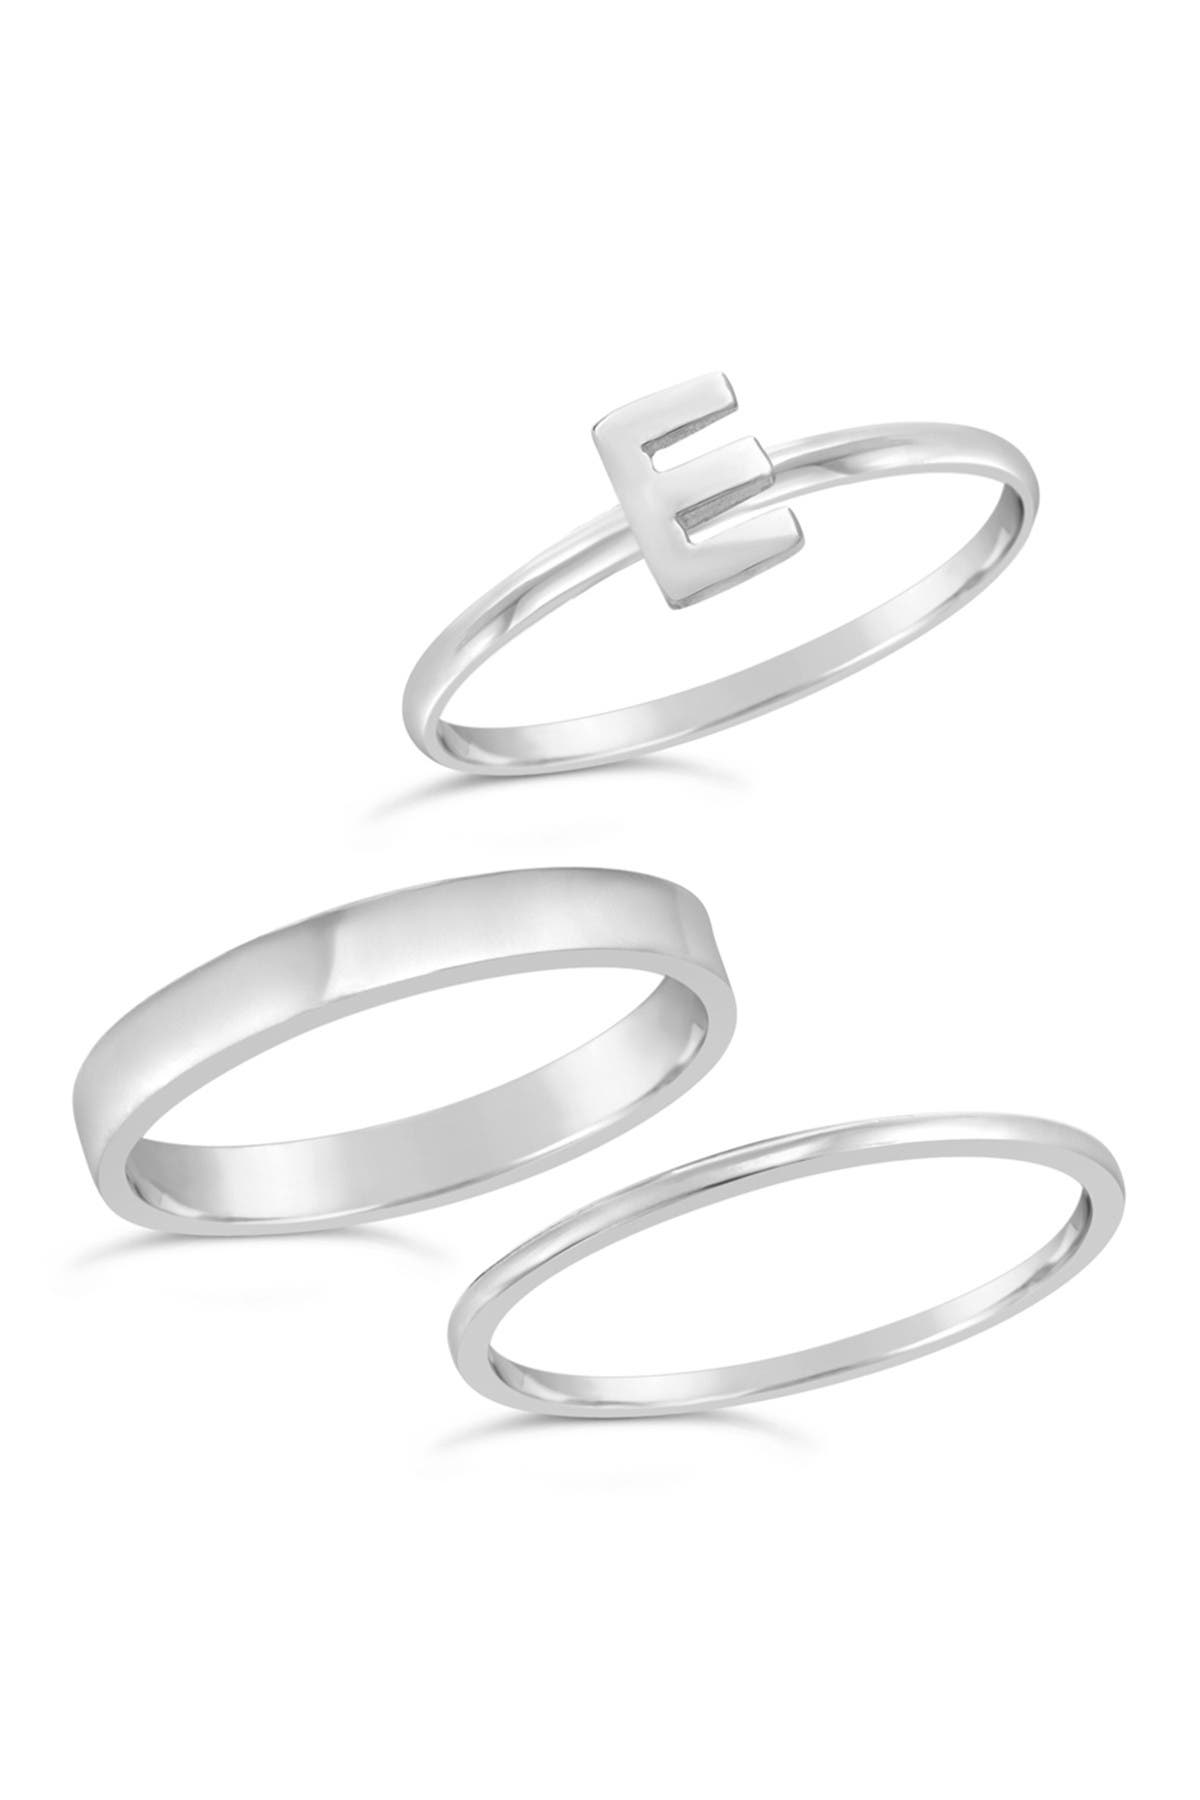 Image of Sterling Forever Sterling Silver Initial Ring - Set of 3 - E